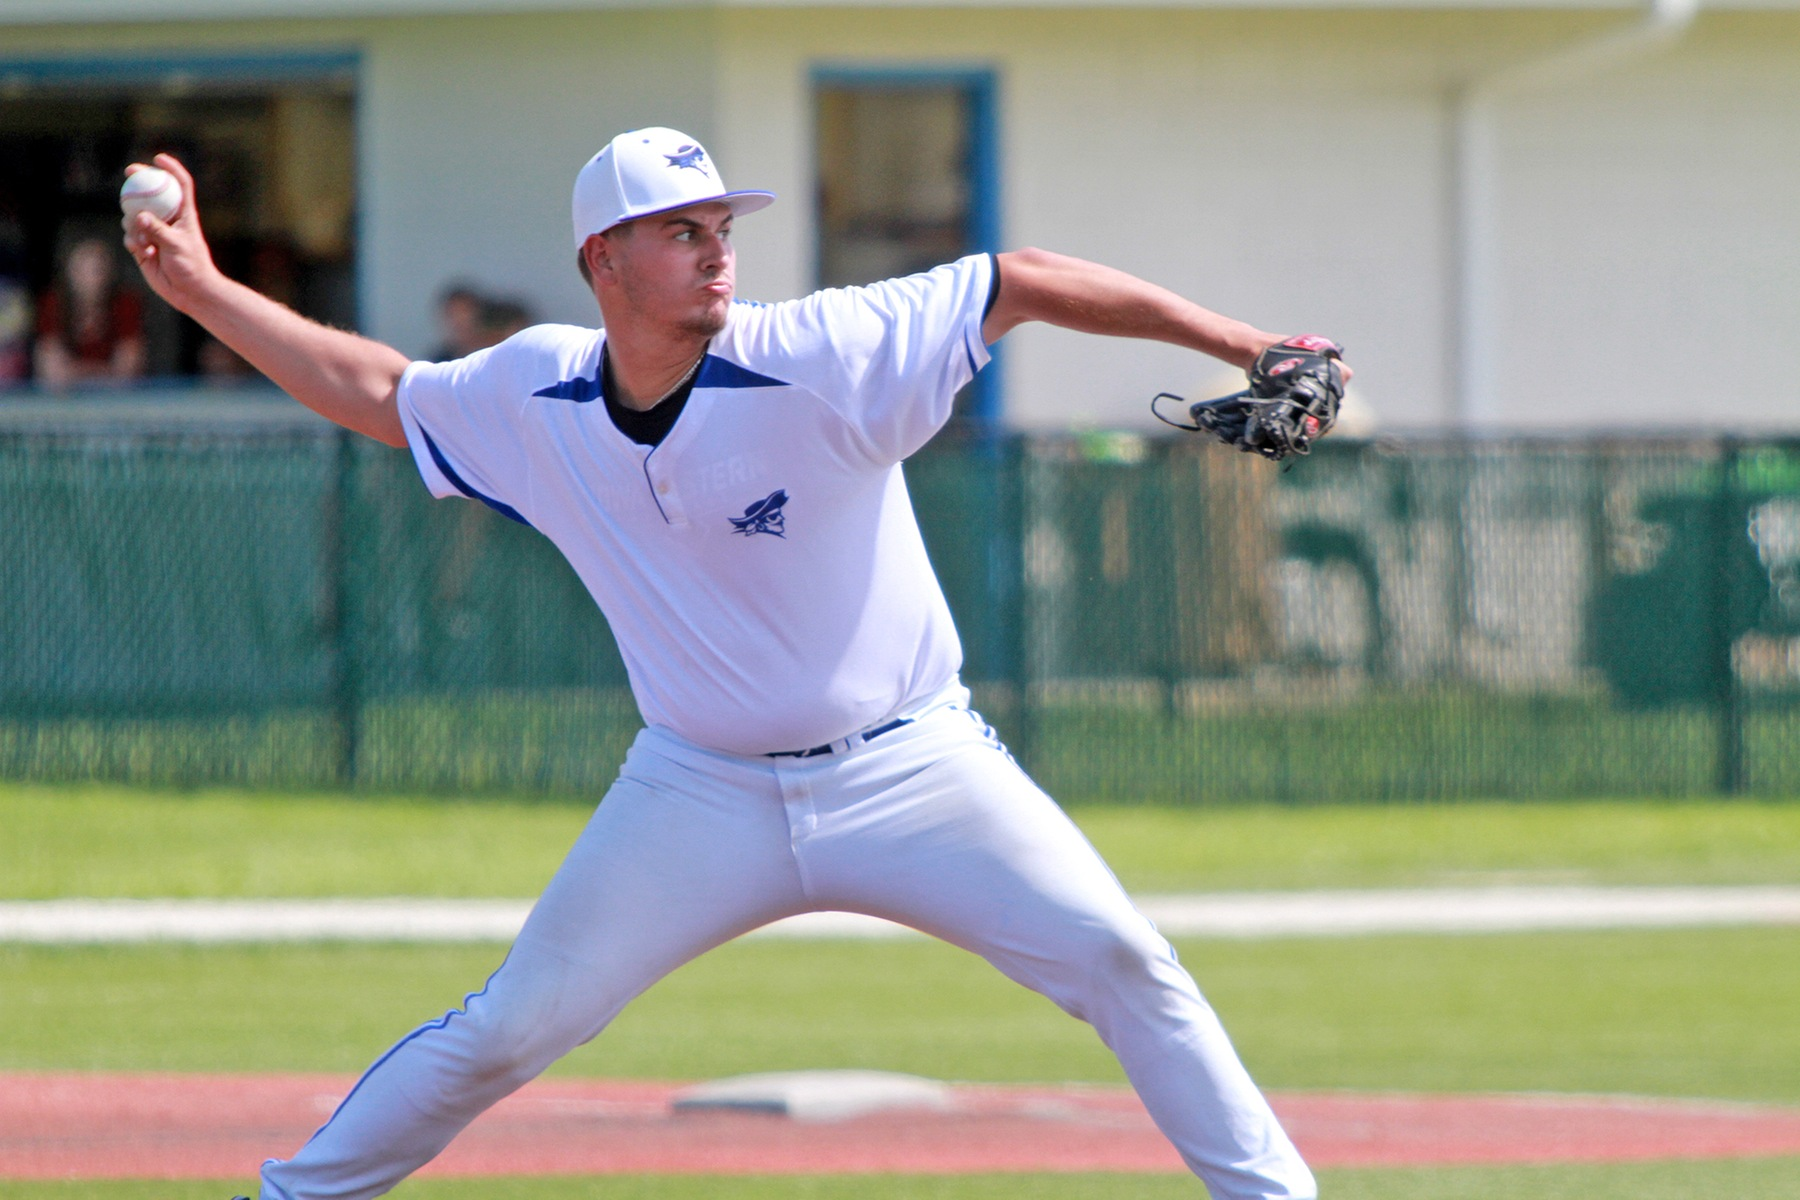 Pitching Shines as Reivers Push Winning Streak to 10